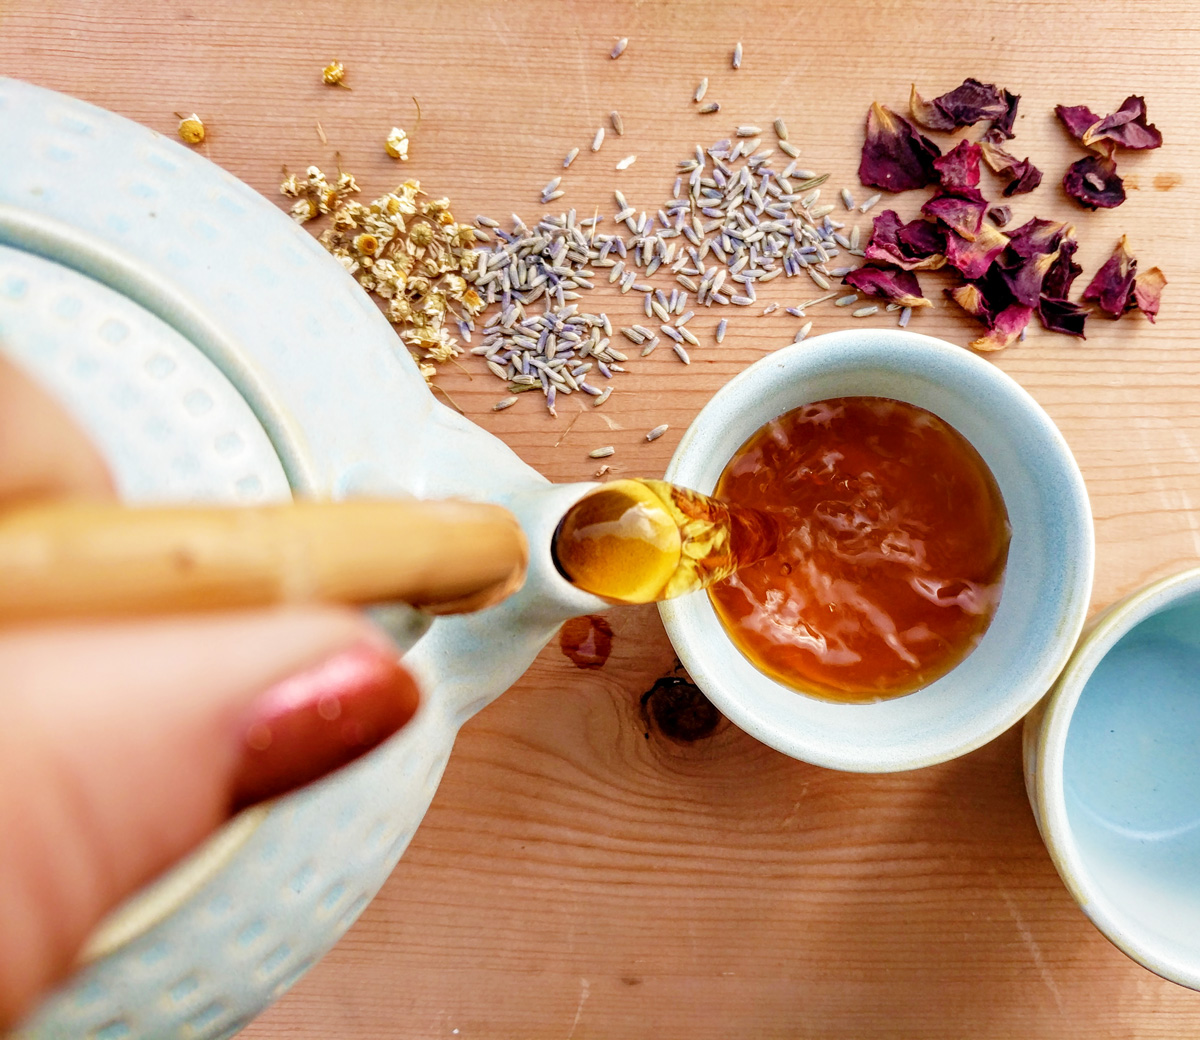 Overhead view of a hand pouring a teapot of caffeine free herbal tea into a cup. Various herbs are scattered on the wooden table around it.